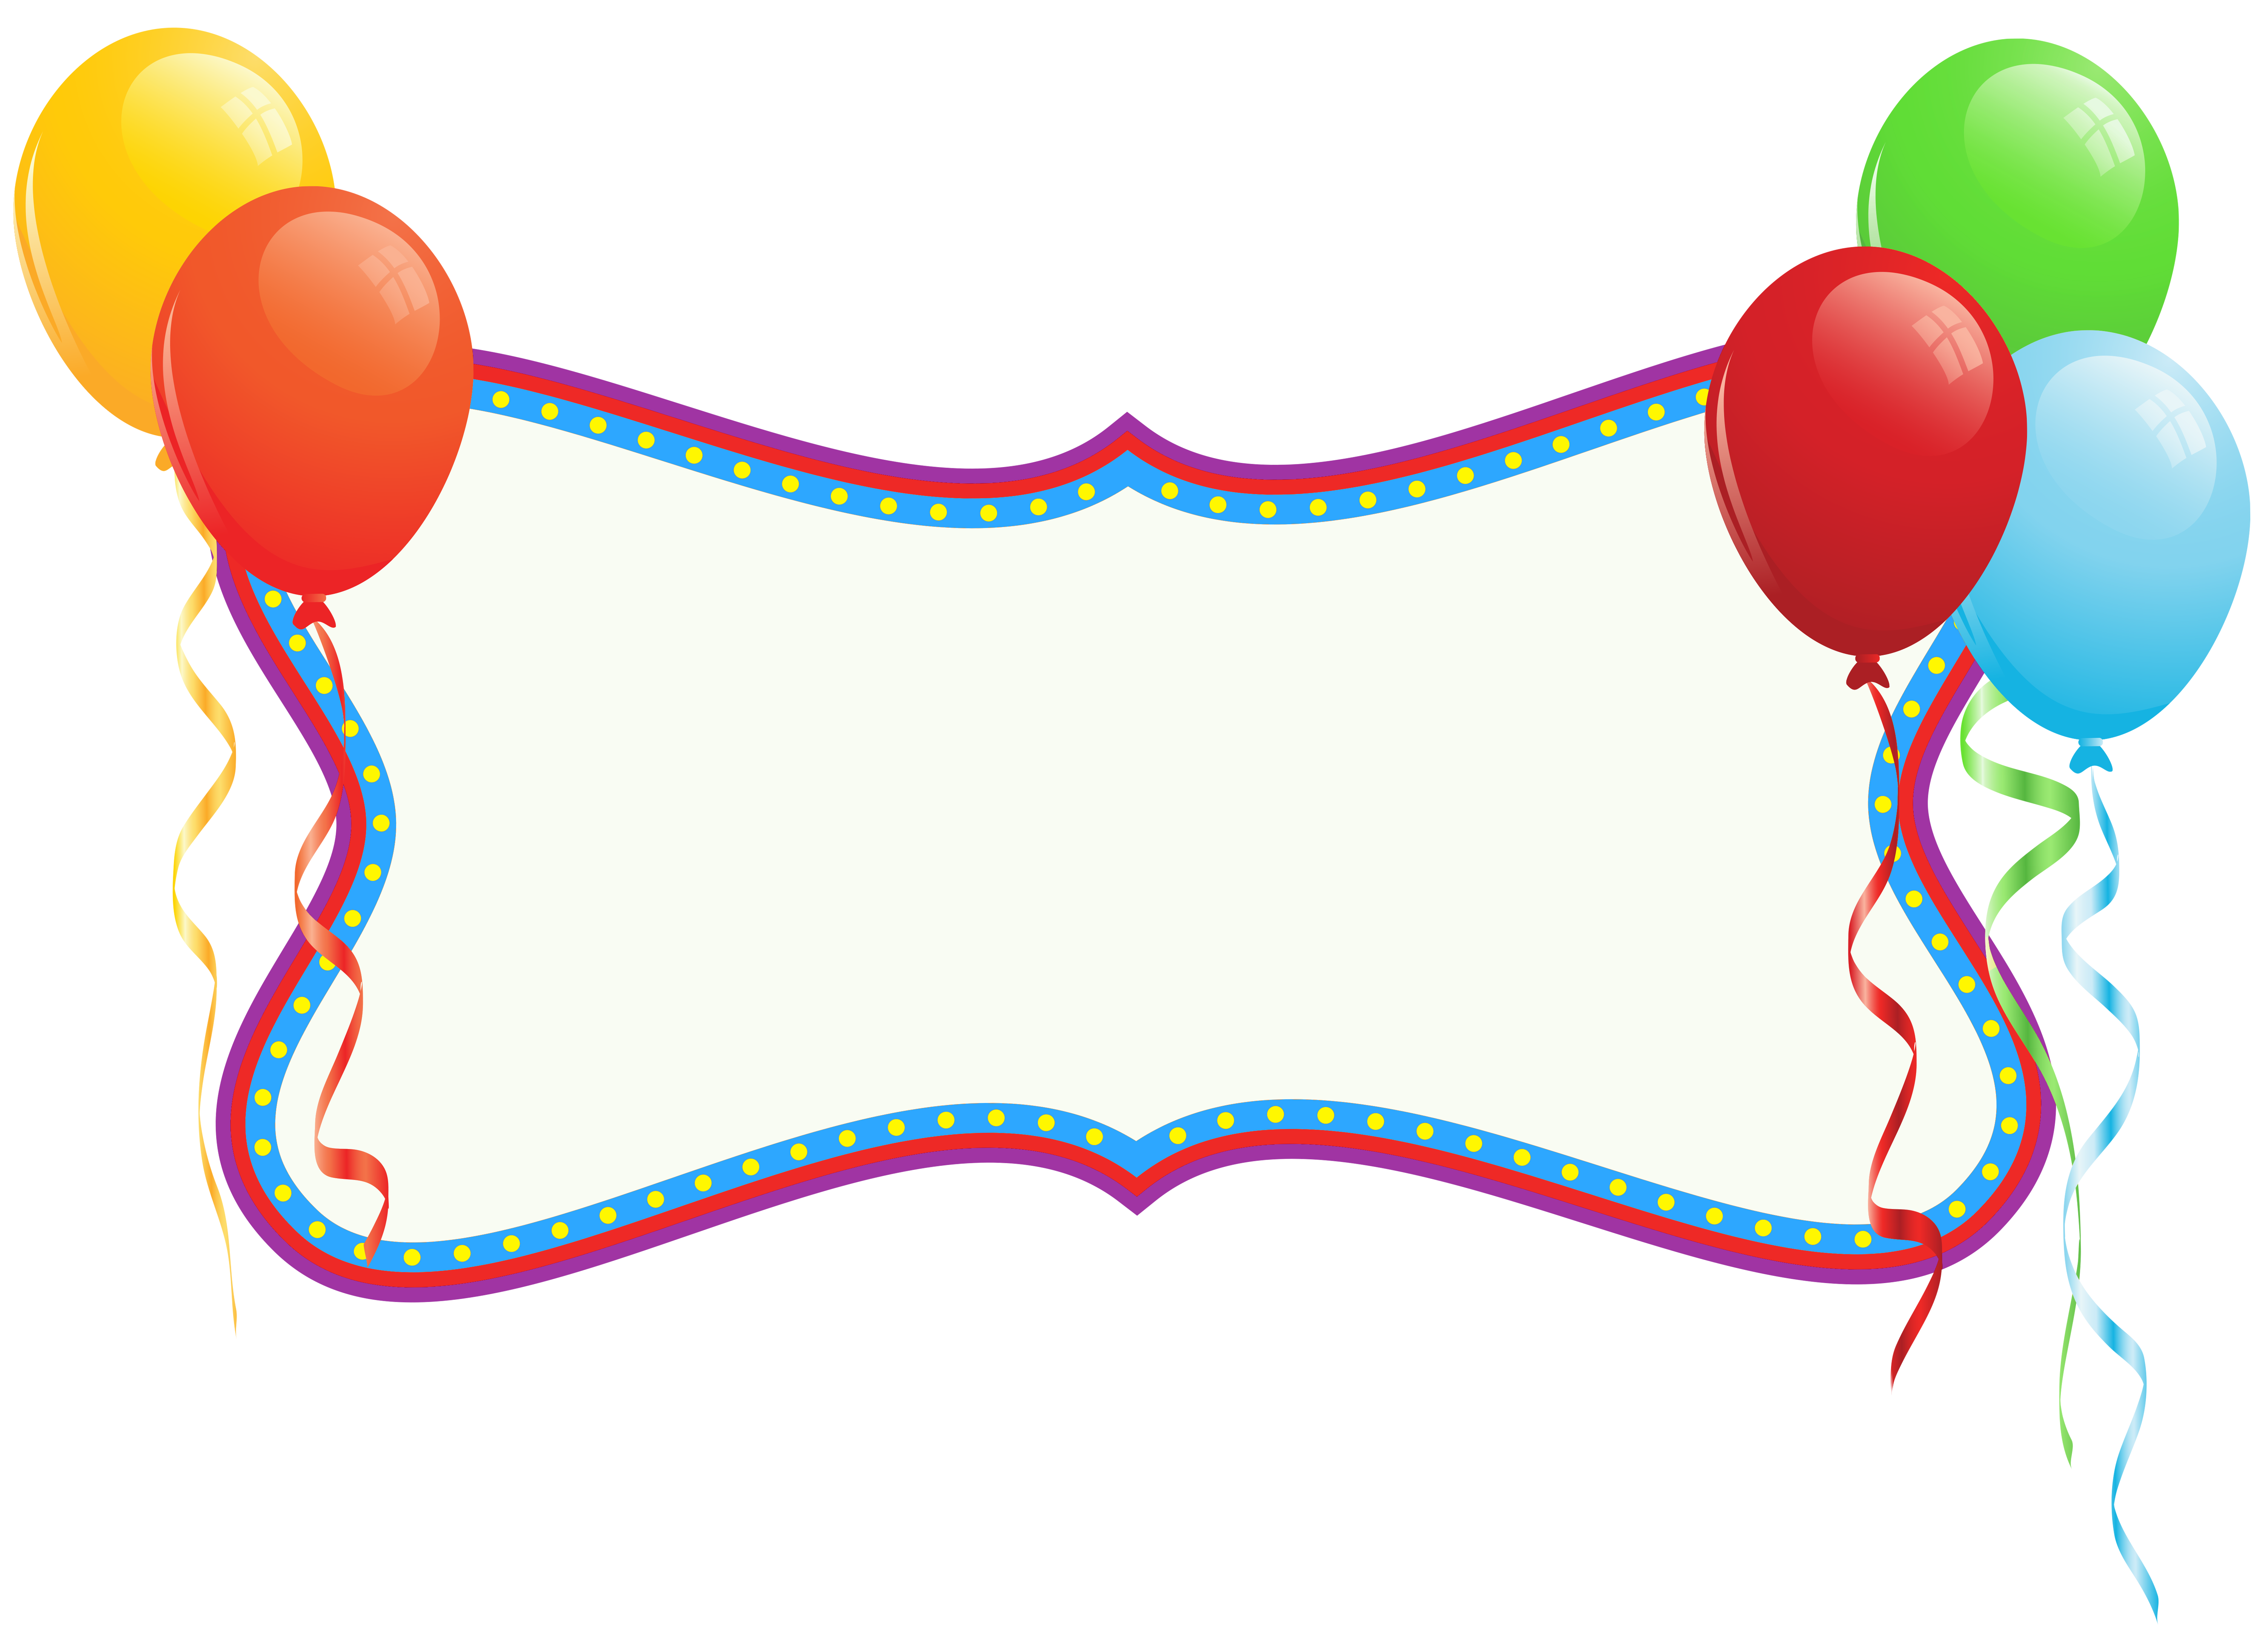 Banner image png. Happy birthday transparent images